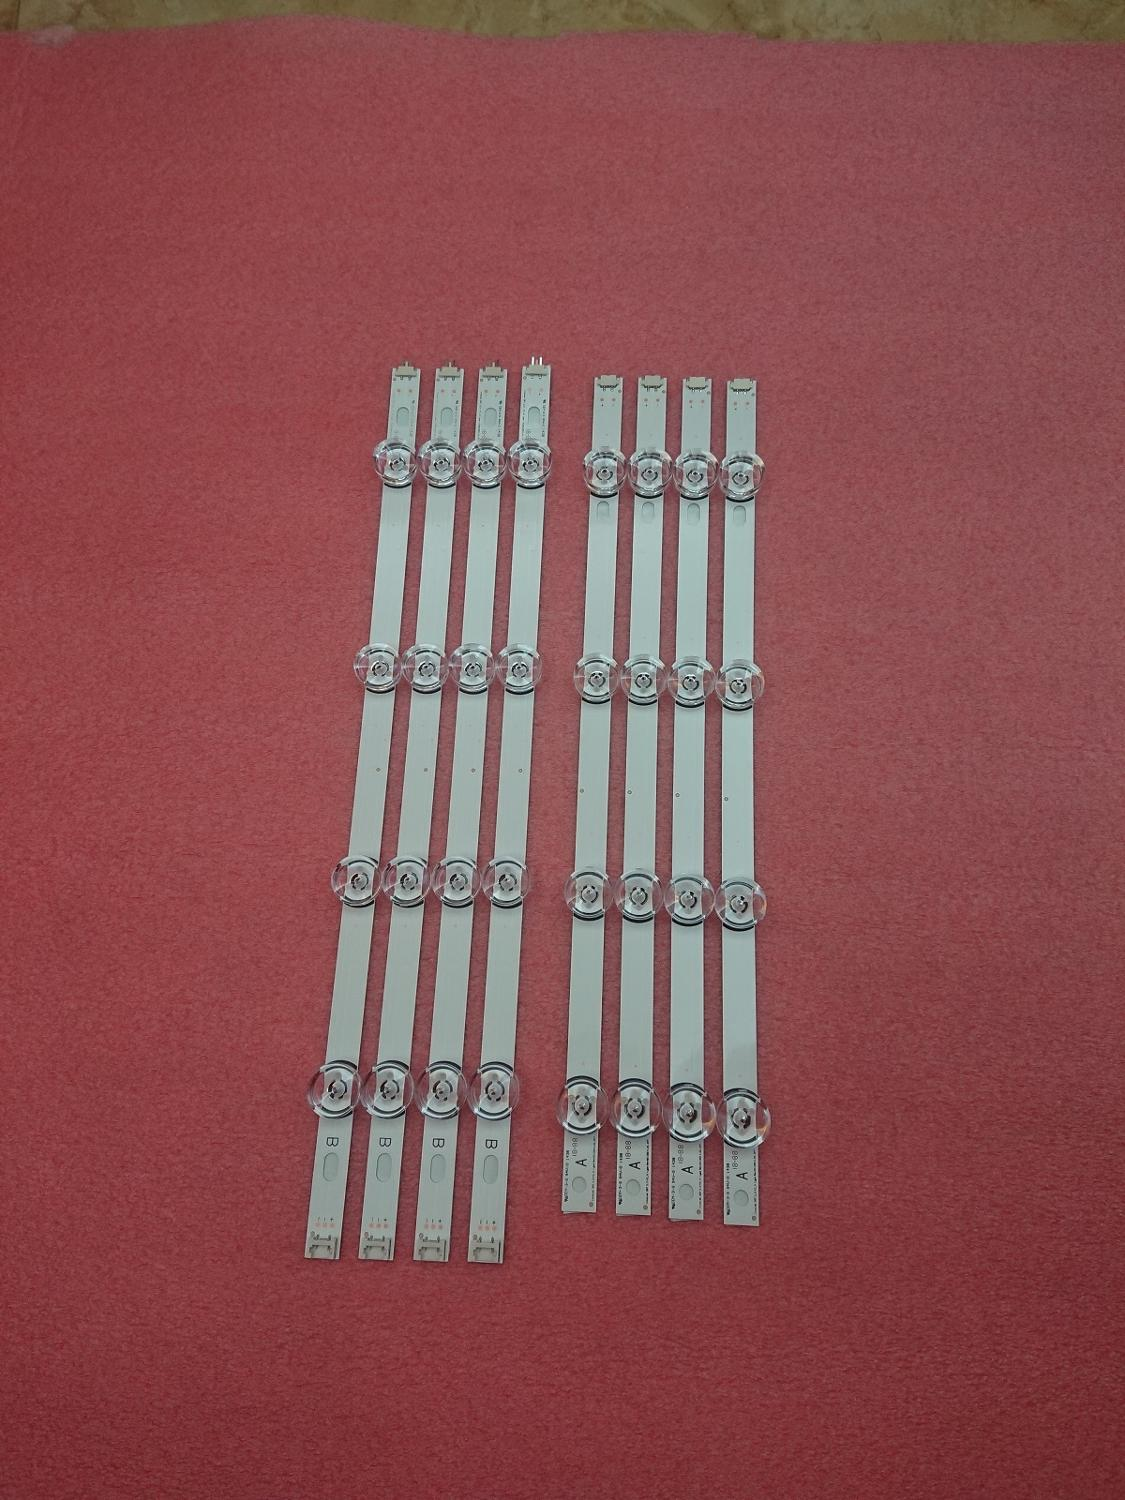 8 Pieces New LED Backligh Strip For LG 42LB550V 42LB551V INNOTEK DRT3.0 DRT 3.0 42 Inch A B 6916L-1709C 1710C 1956E 1957E 1956A